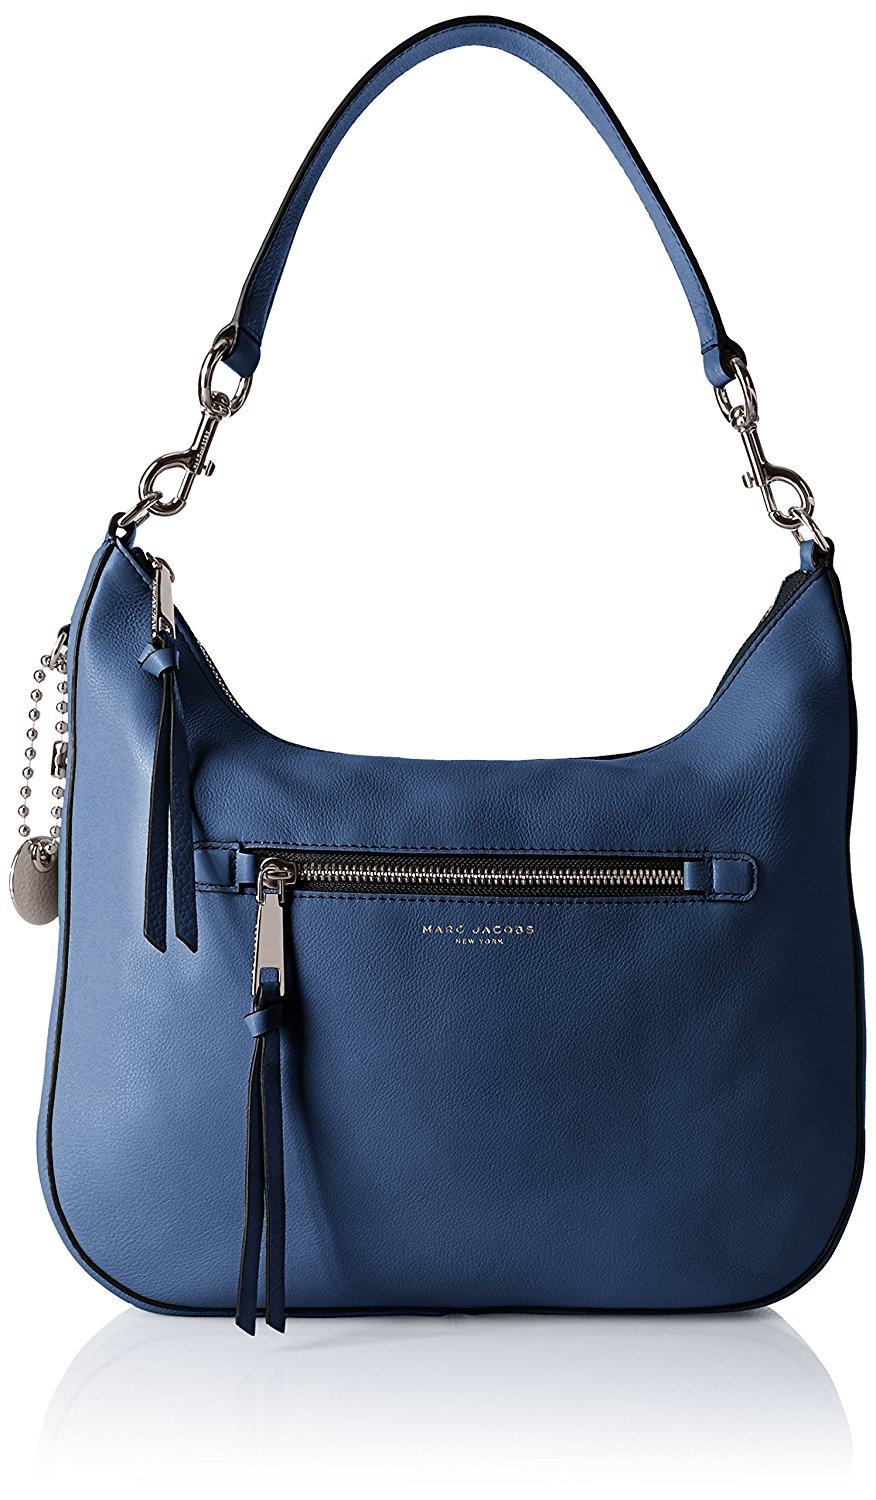 7aae884f81fe Marc Jacobs Leather Recruit Hobo Bag in Dark Blue 889732672736